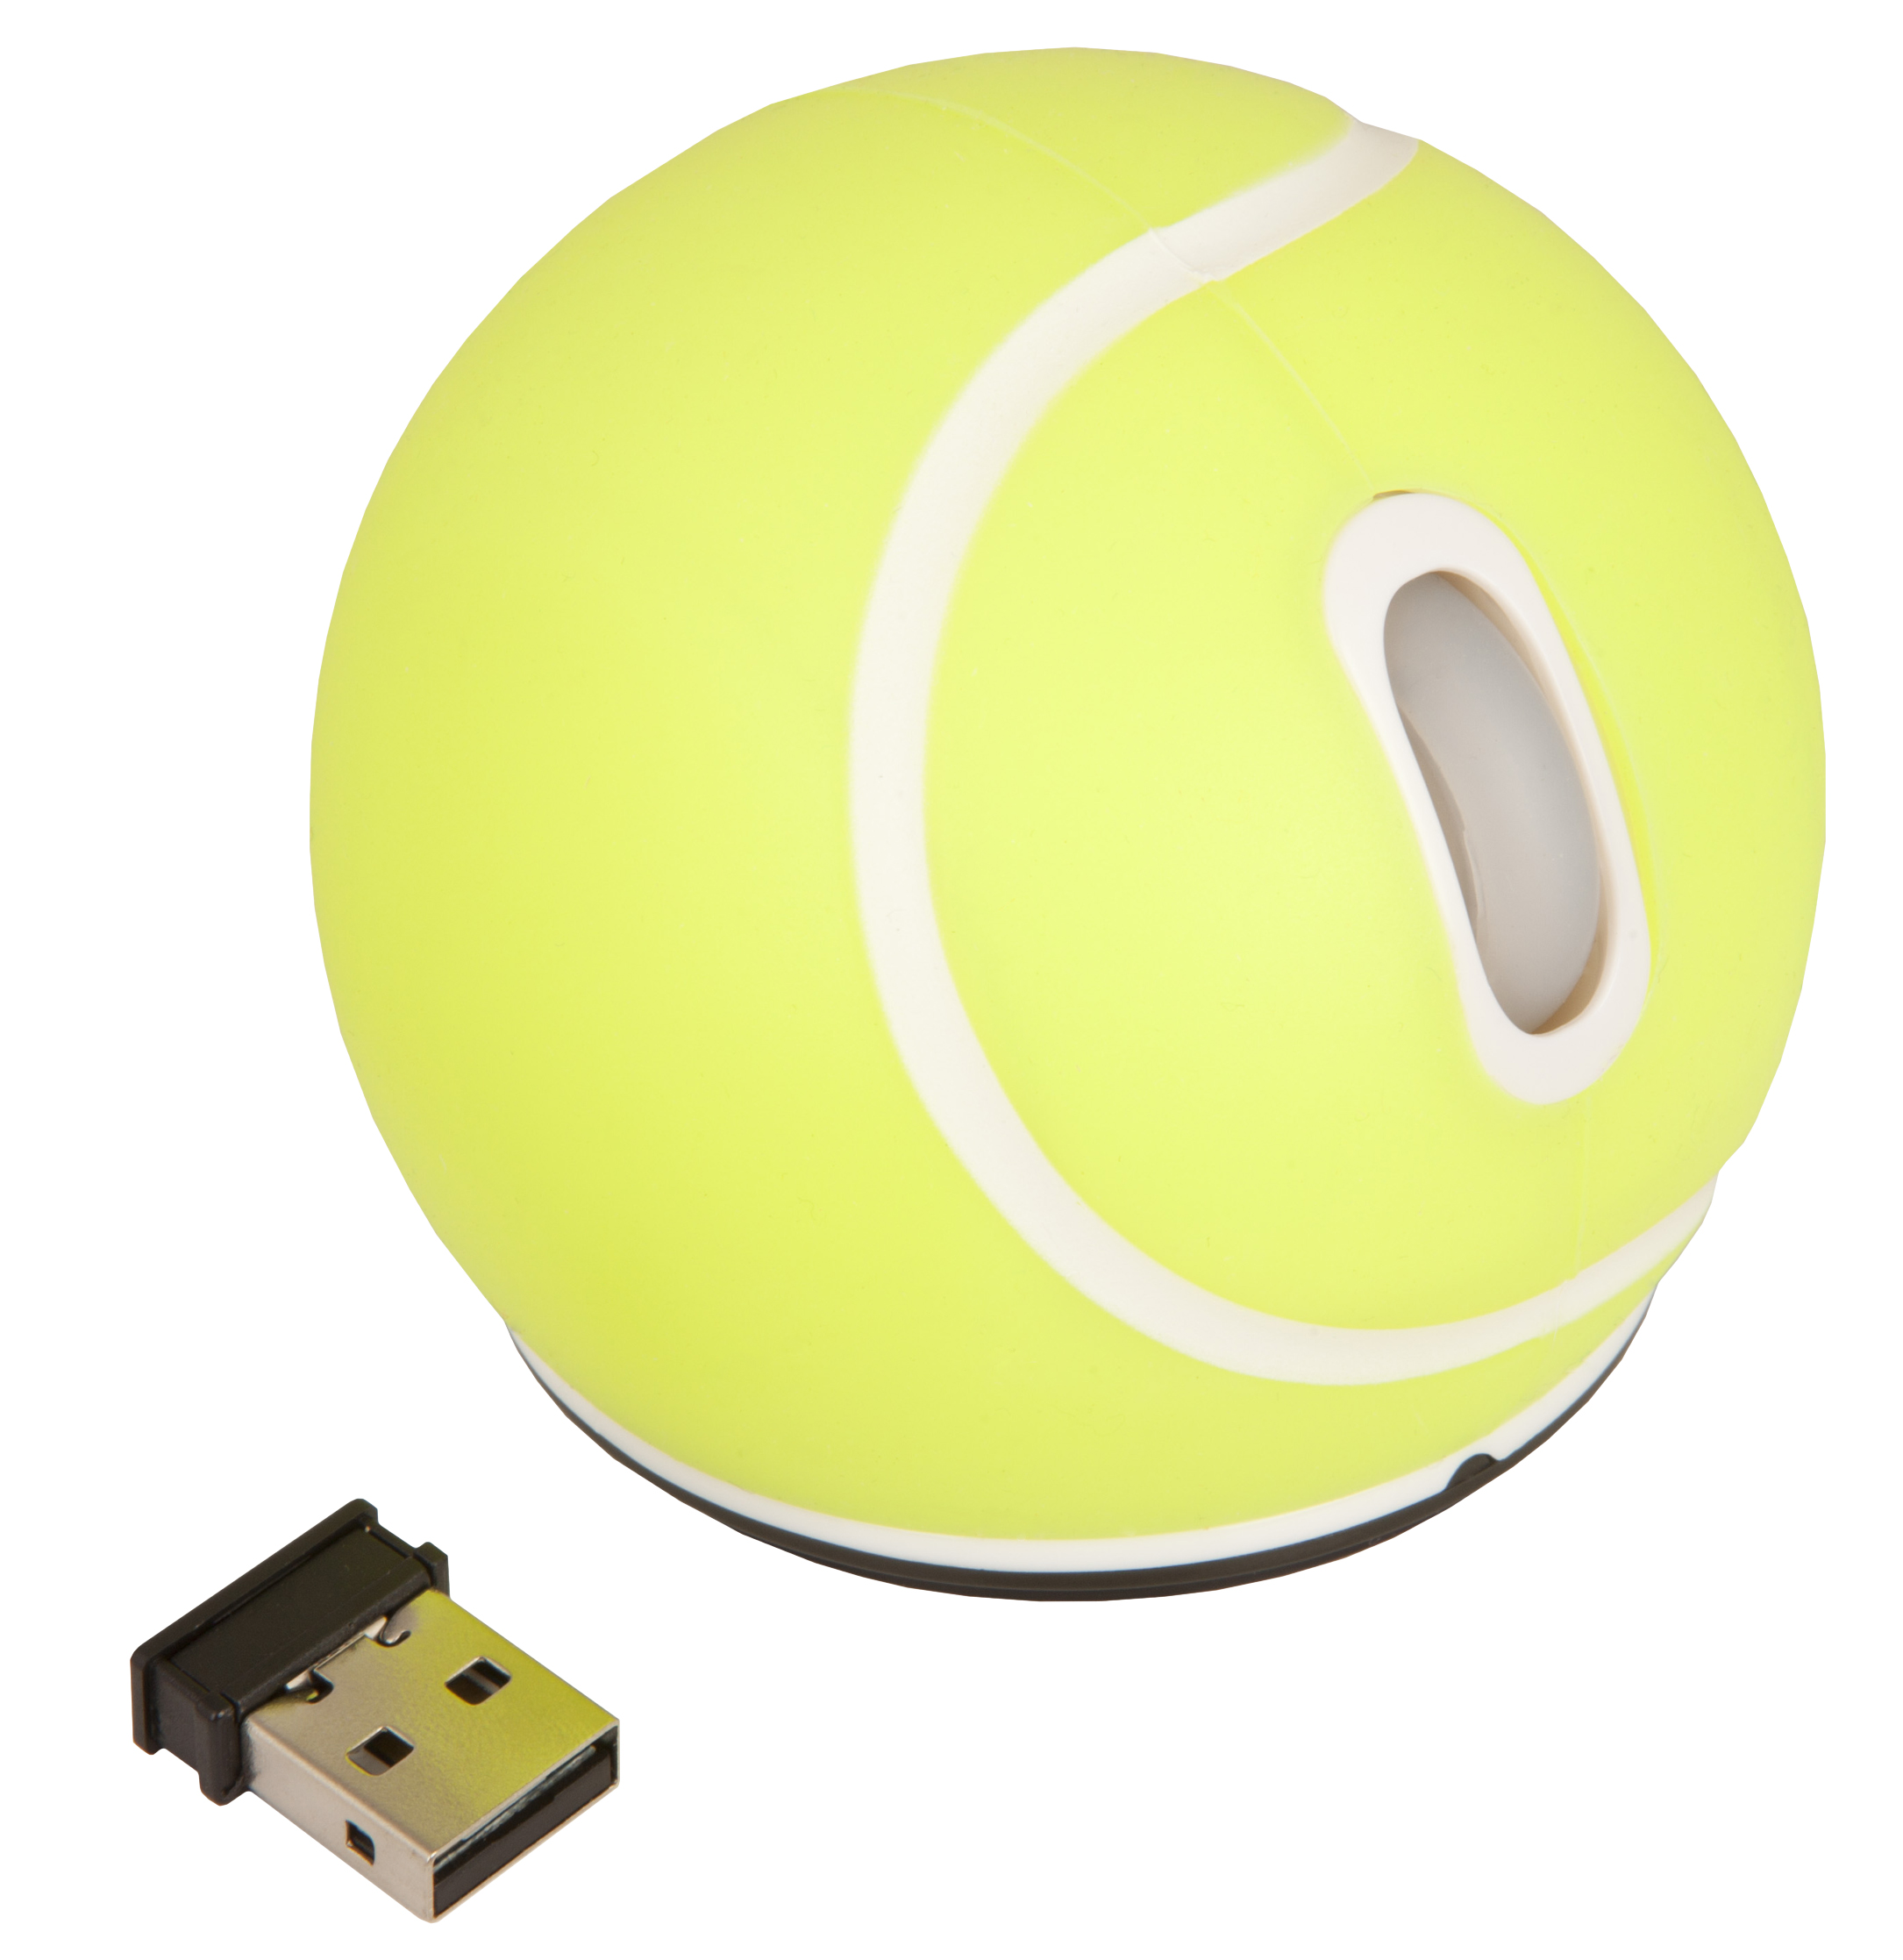 Urban Factory Wireless Mouse - Tennis Ball Form